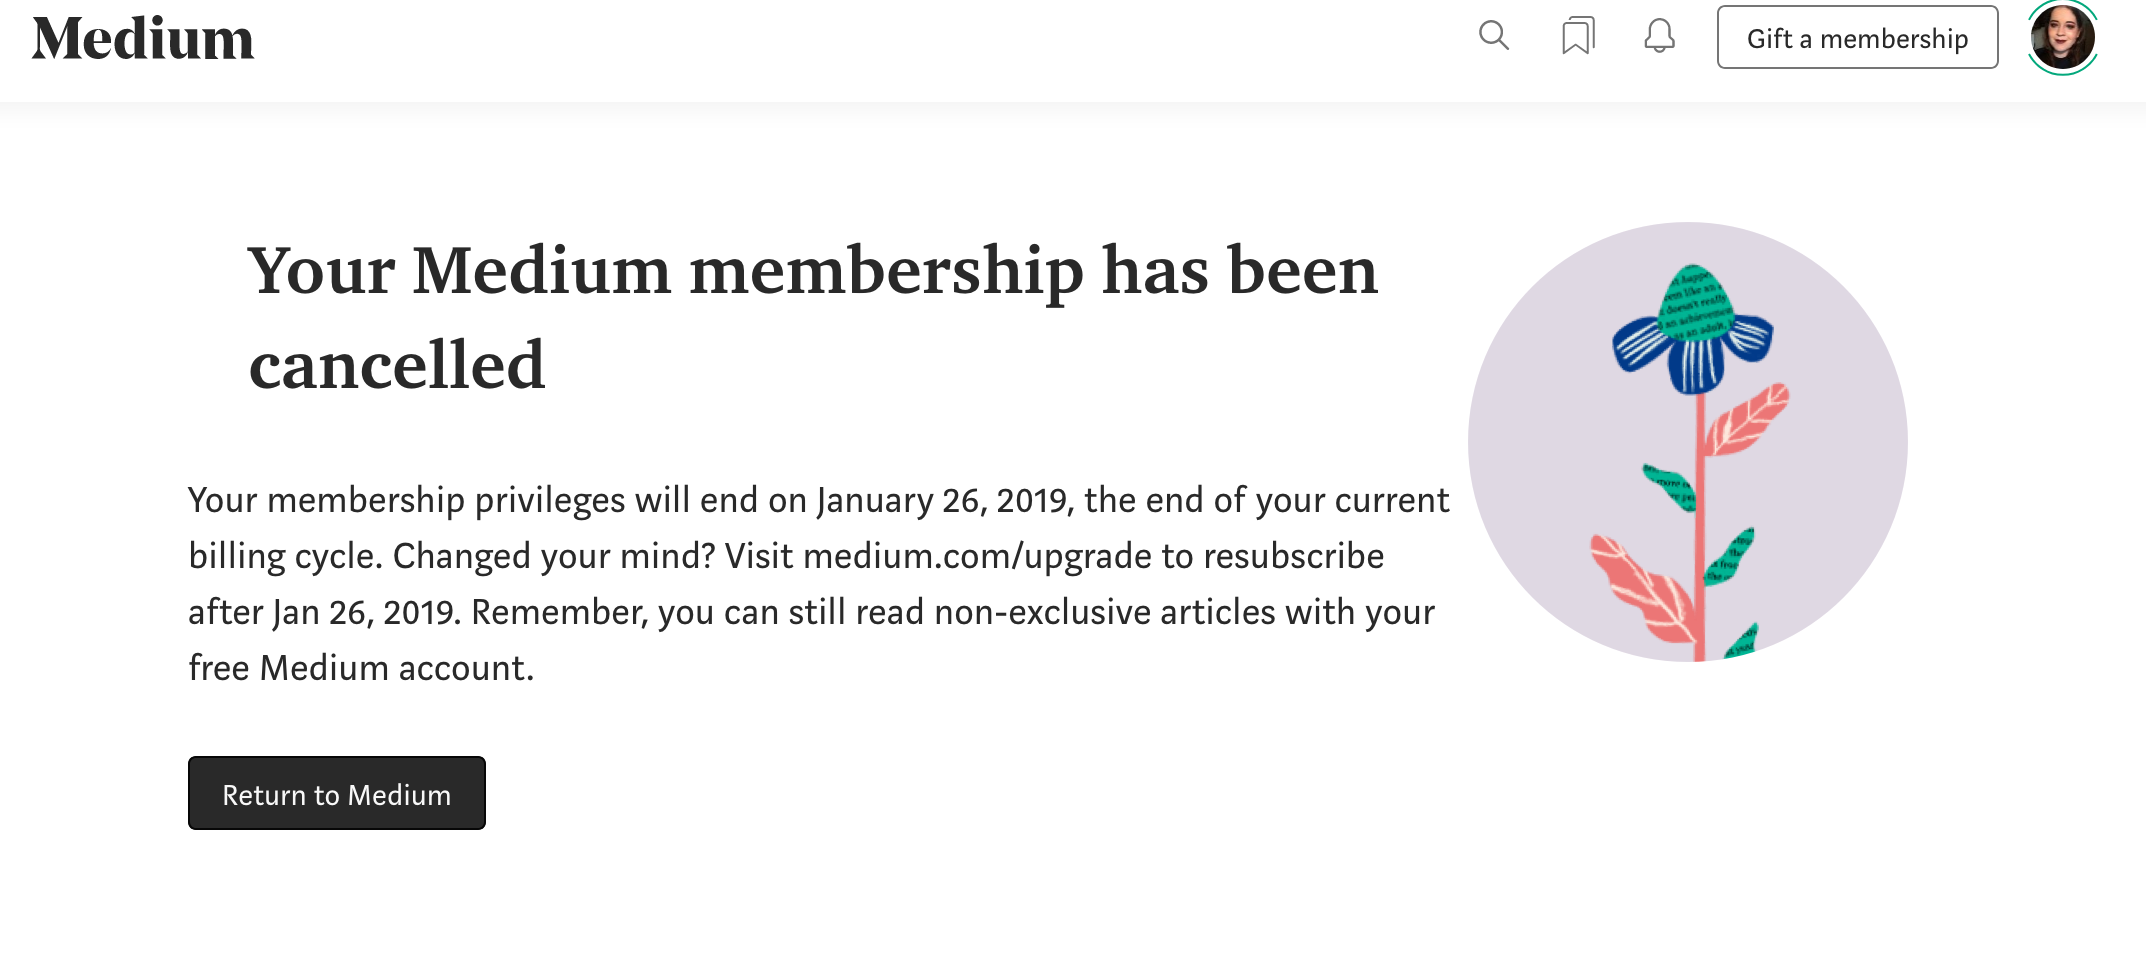 5 Reasons Why You Should Cancel Your Medium Membership in 2019